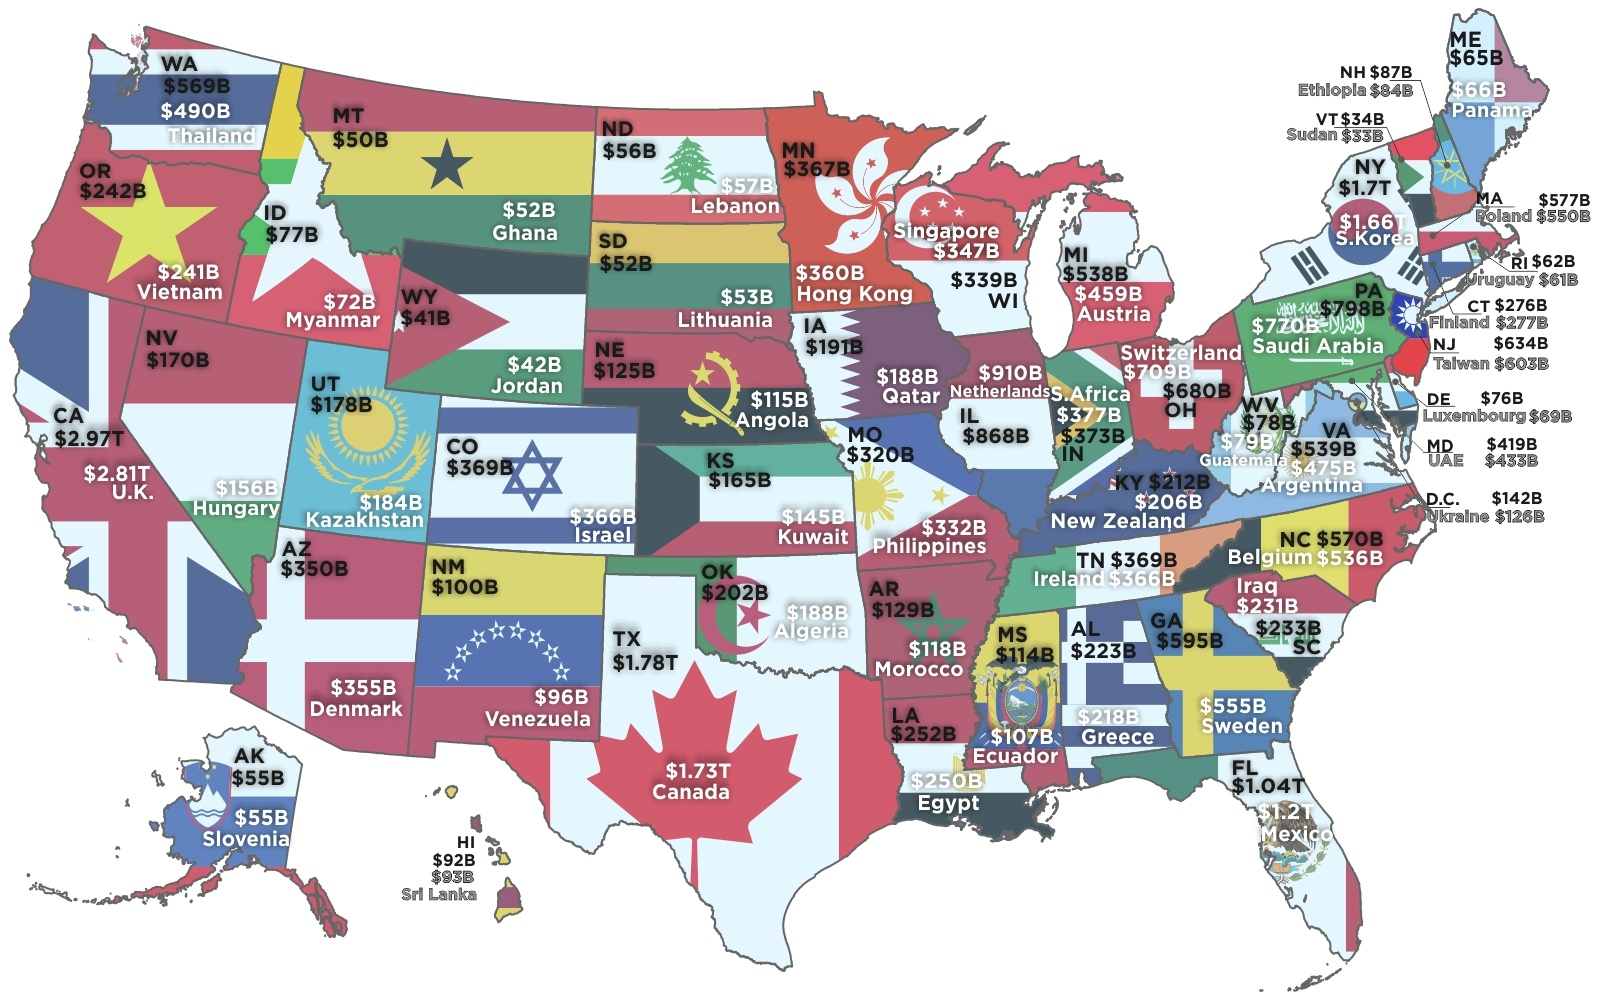 Mapped Comparing United States Economic Output Against